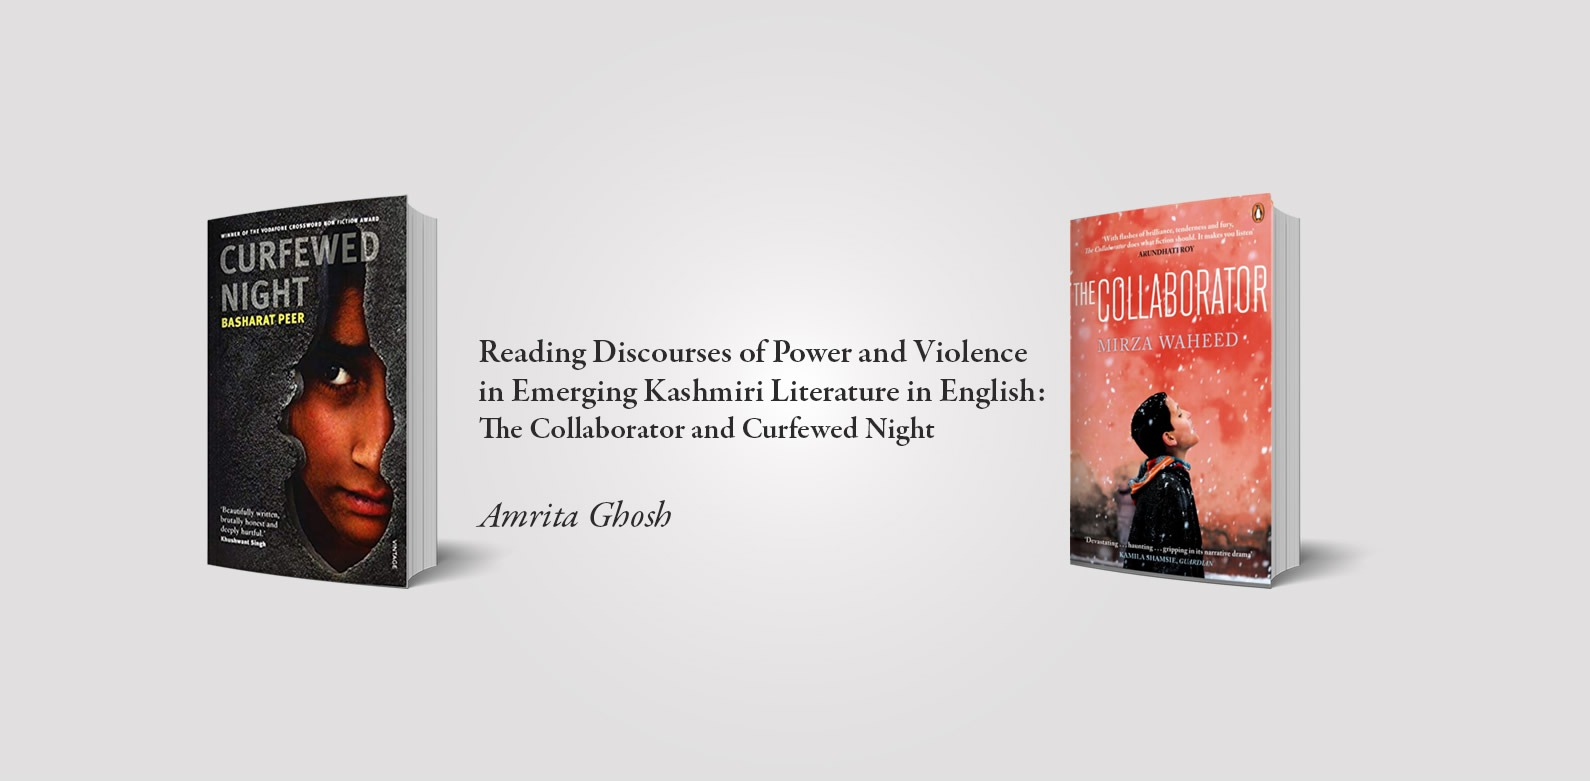 Reading Discourses of Power and Violence in Emerging Kashmiri Literature in English: The Collaborator and Curfewed Night — by Amrita Ghosh